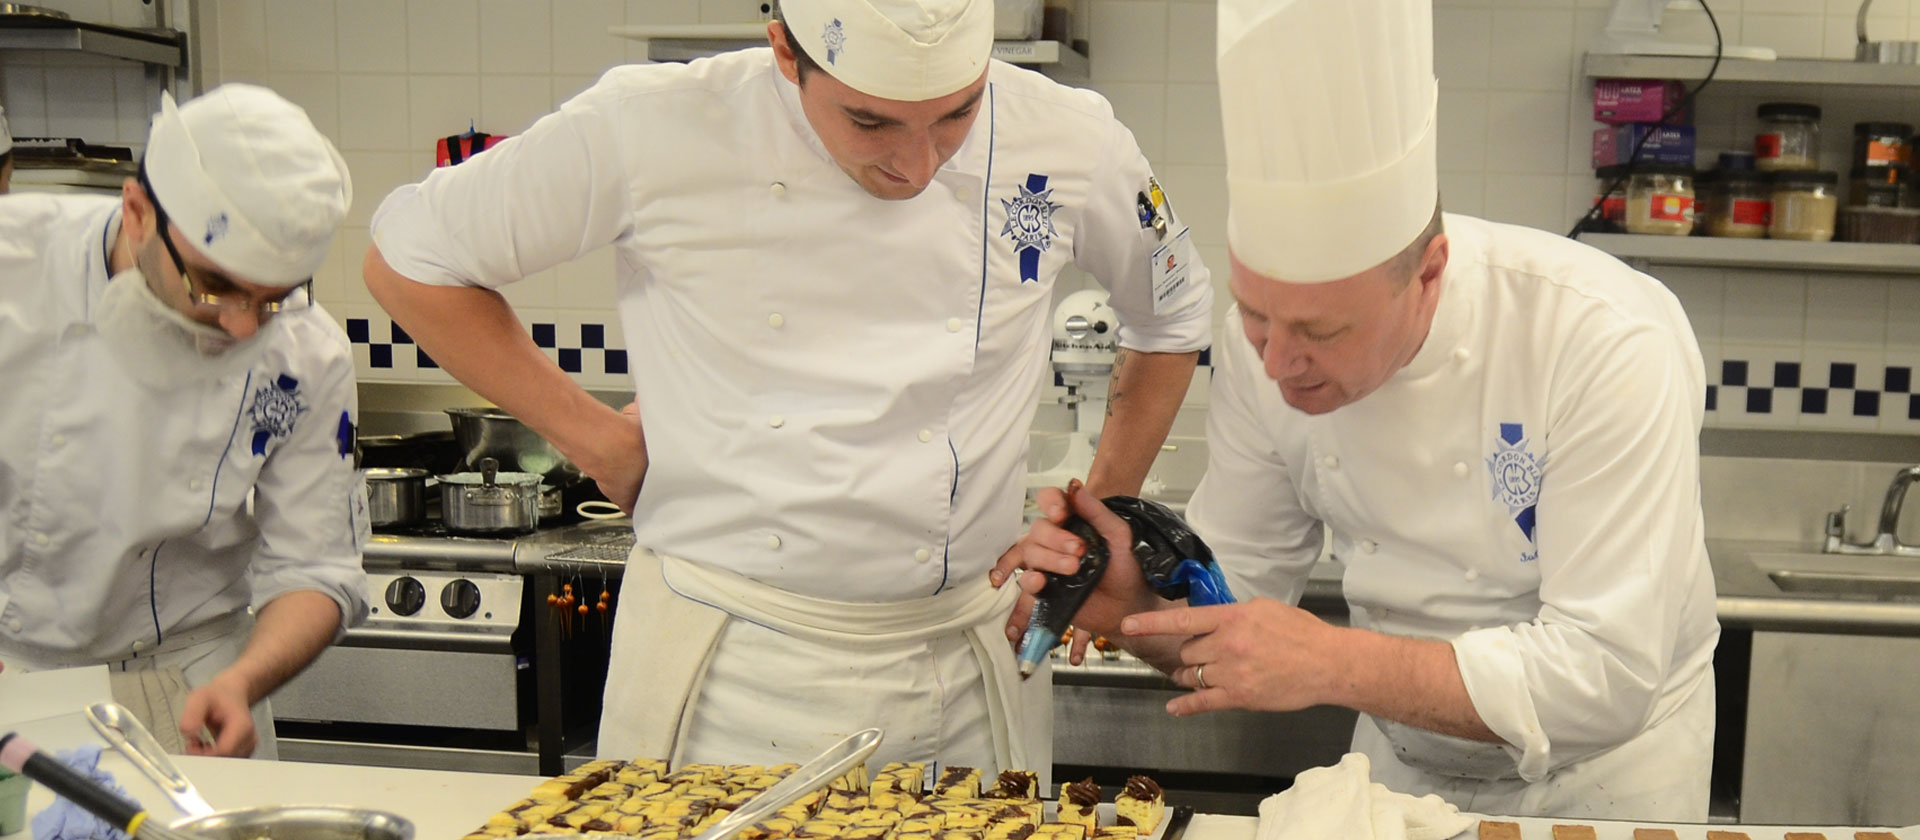 Pasrty Chef Ian Winton - le cordon bleu london